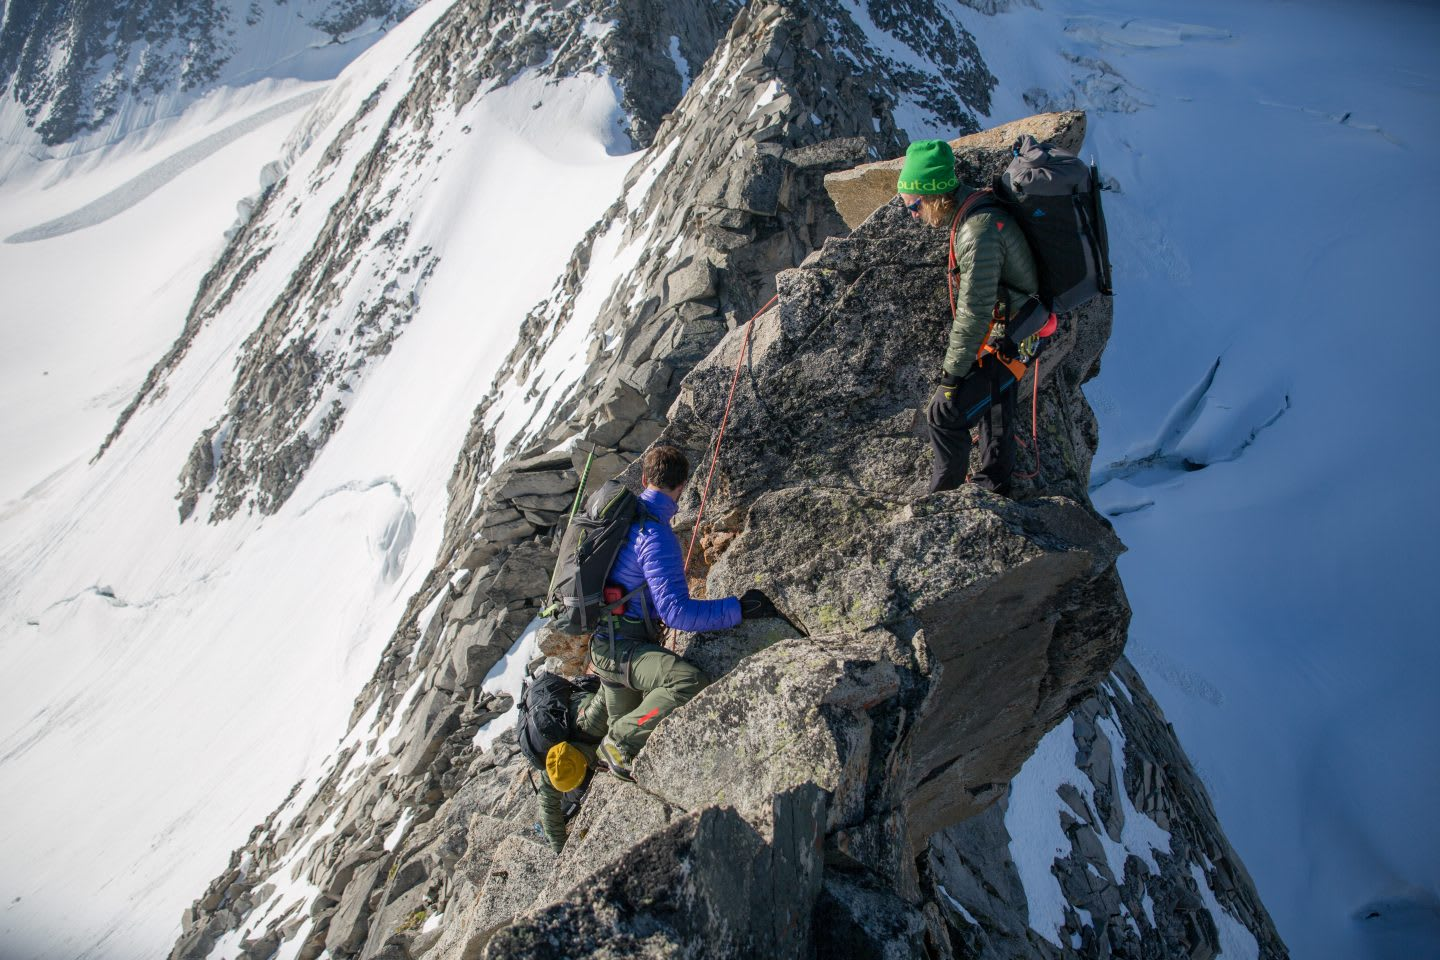 mountaineers-climbing-steep-mountain-alps-terrex-mountain project